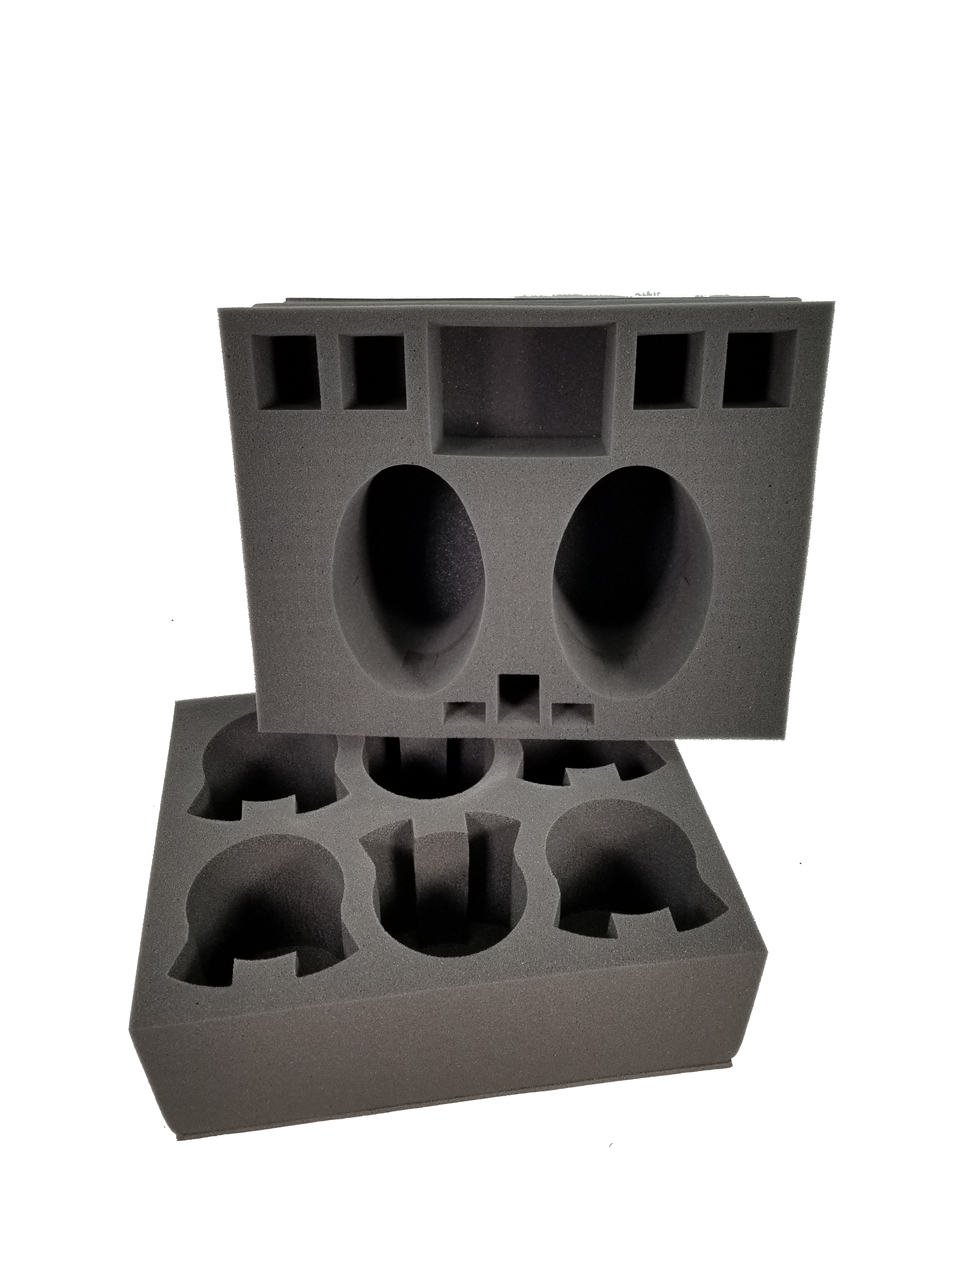 Battlefoam: WH40K: 8th Edition Imperial Knight Foam Kit for the P.A.C.K. 720 (BFL)